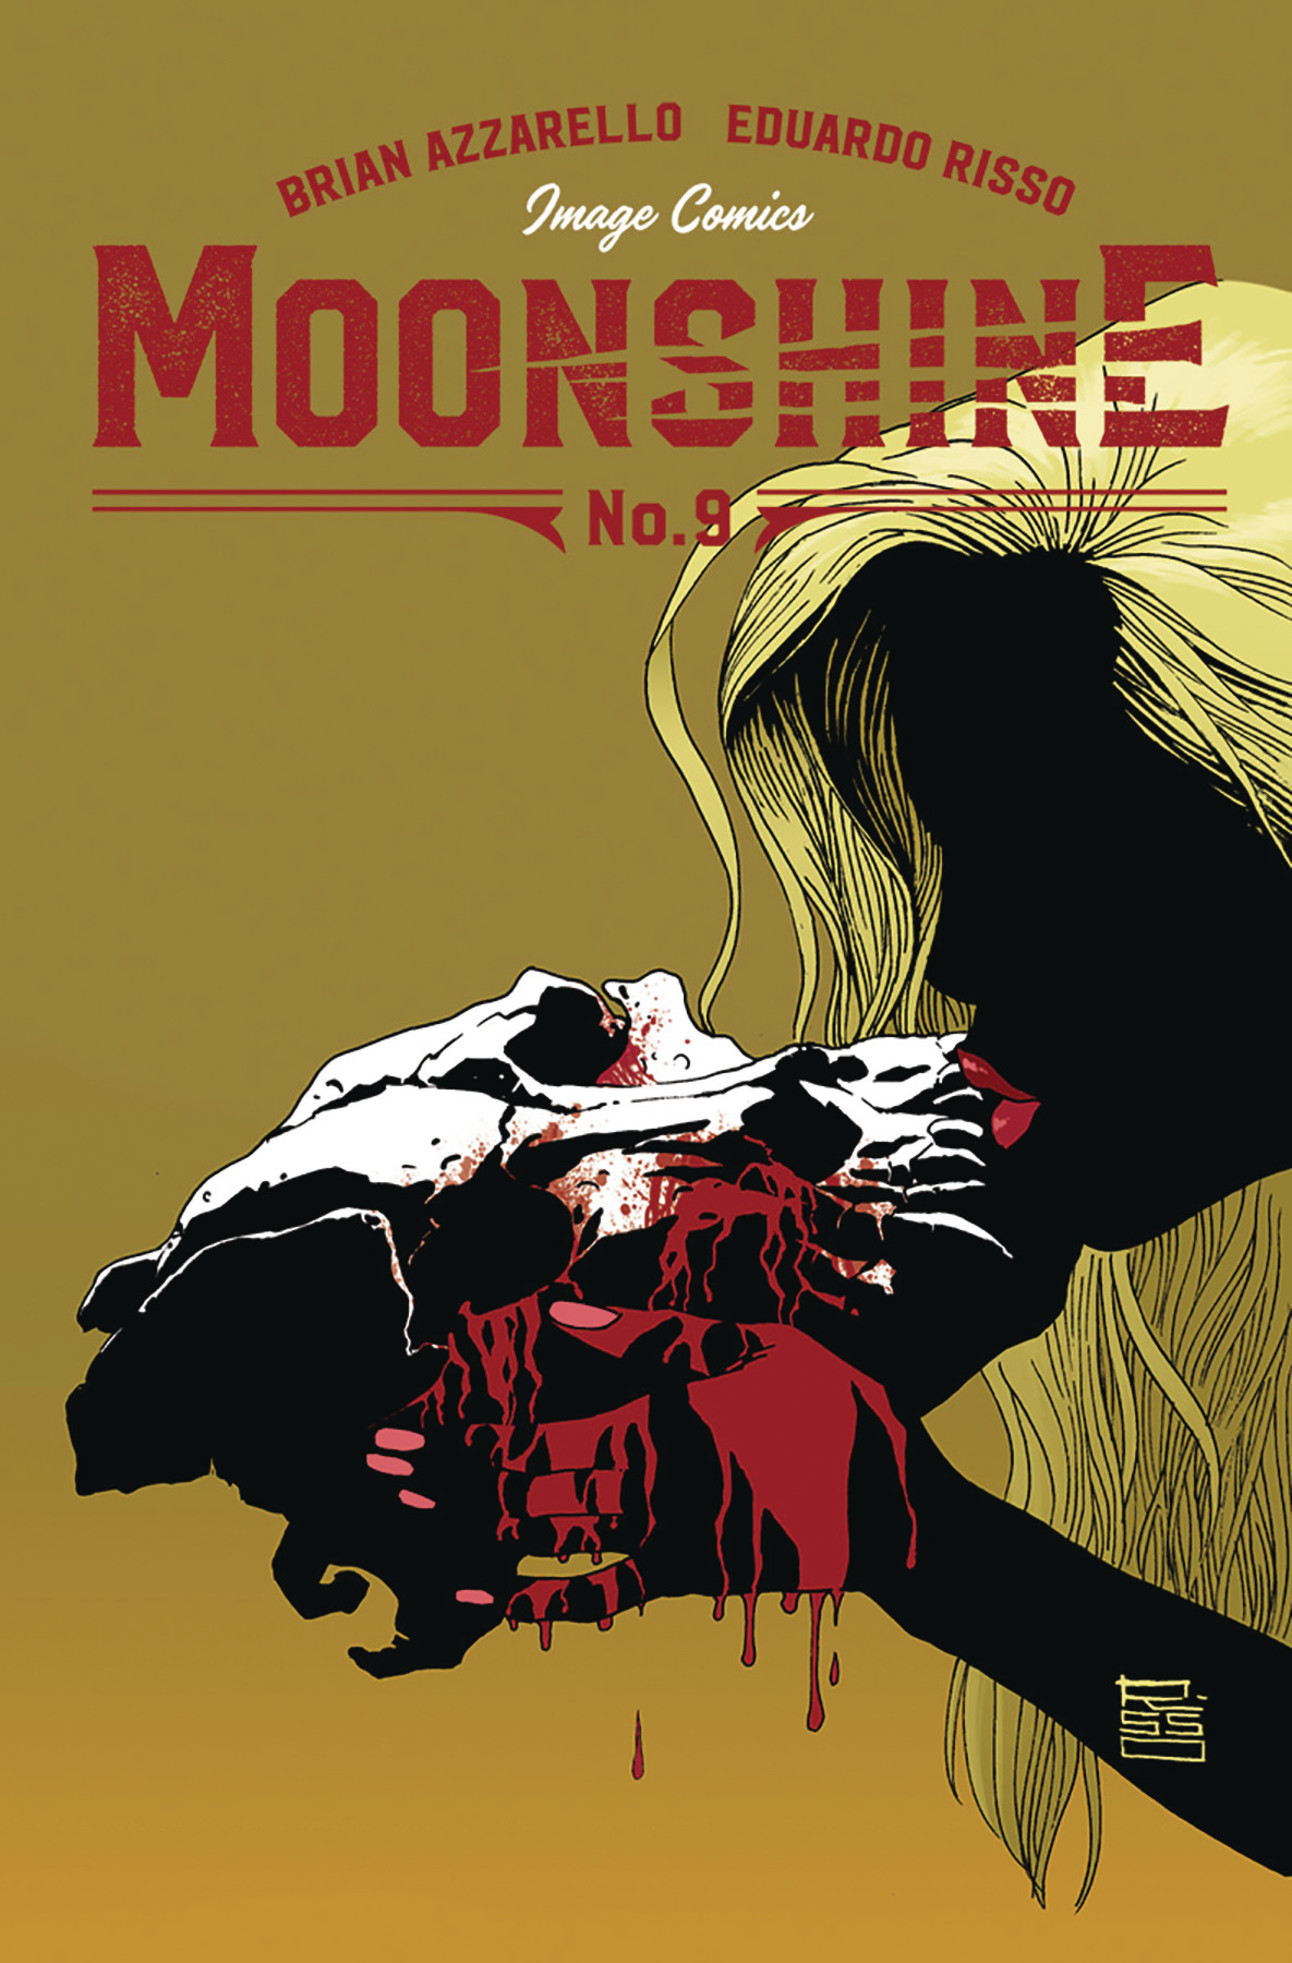 Moonshine #9 Cover by Eduardo Risso